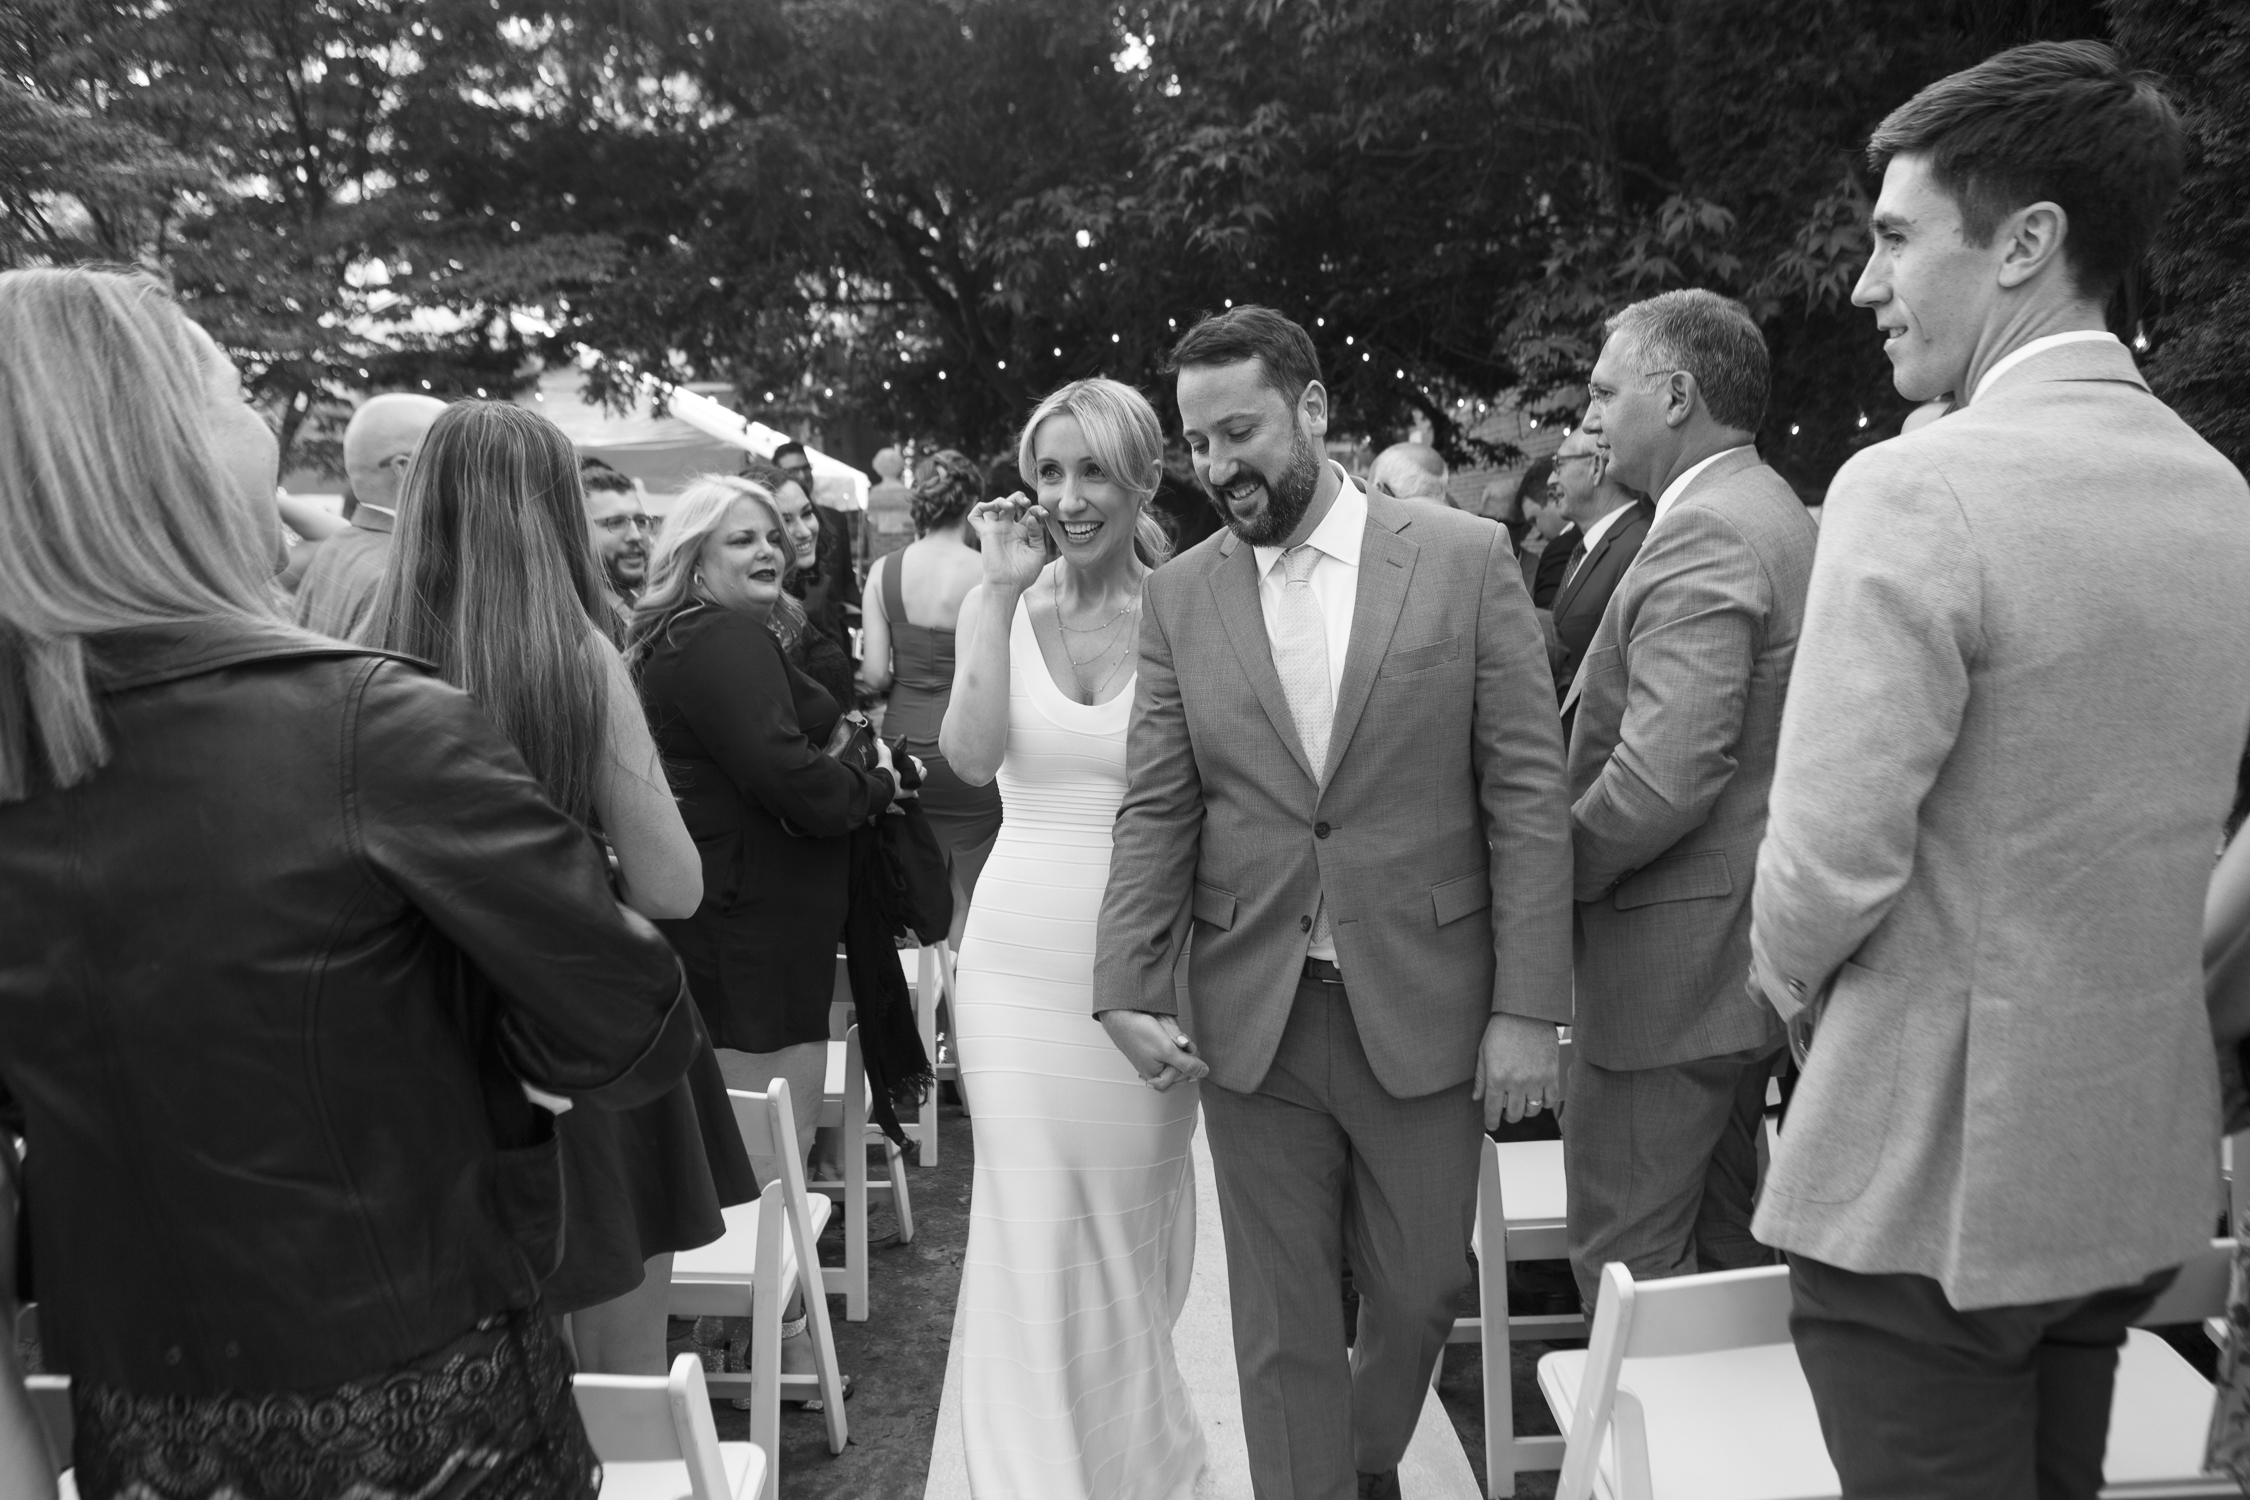 Brooklyn Wedding Photographer _ Jonathan Heisler _ 5112019 _010.jpg